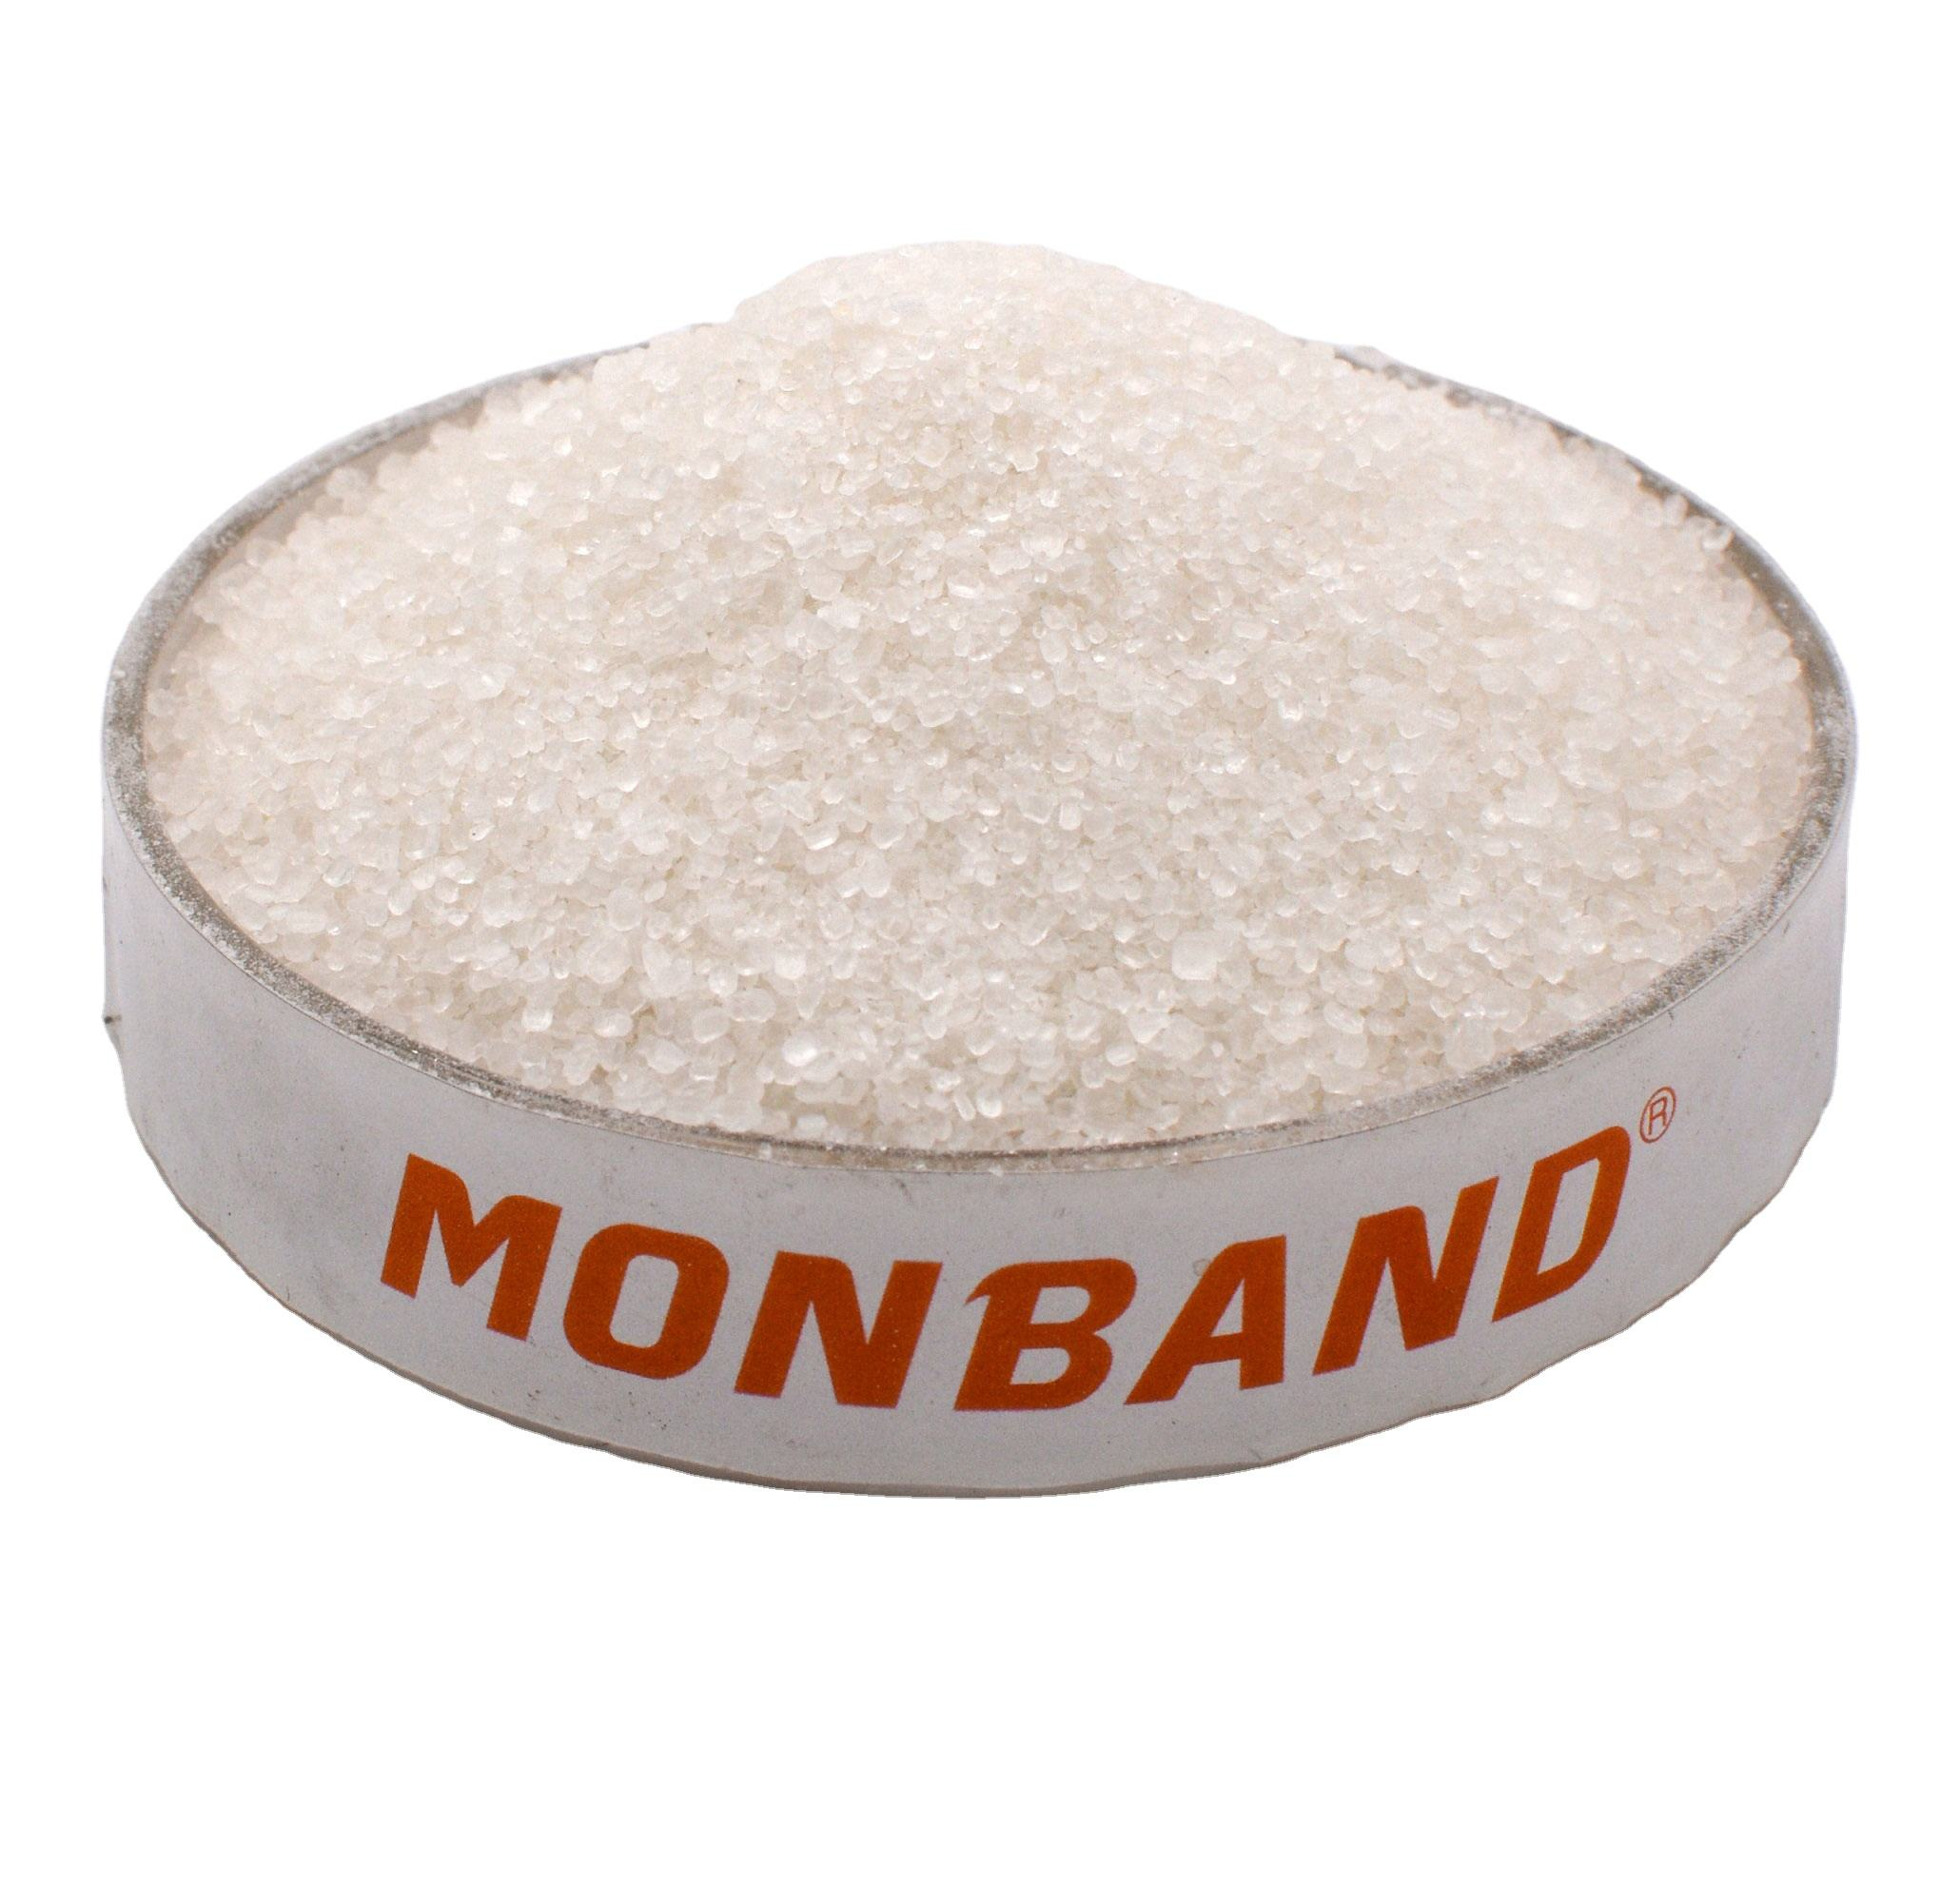 Monband Ammonium Sulphate Fertilizer Water Soluble Functional Fertilizer Ammonium Sulphate Nitrate For Agriculture Crops